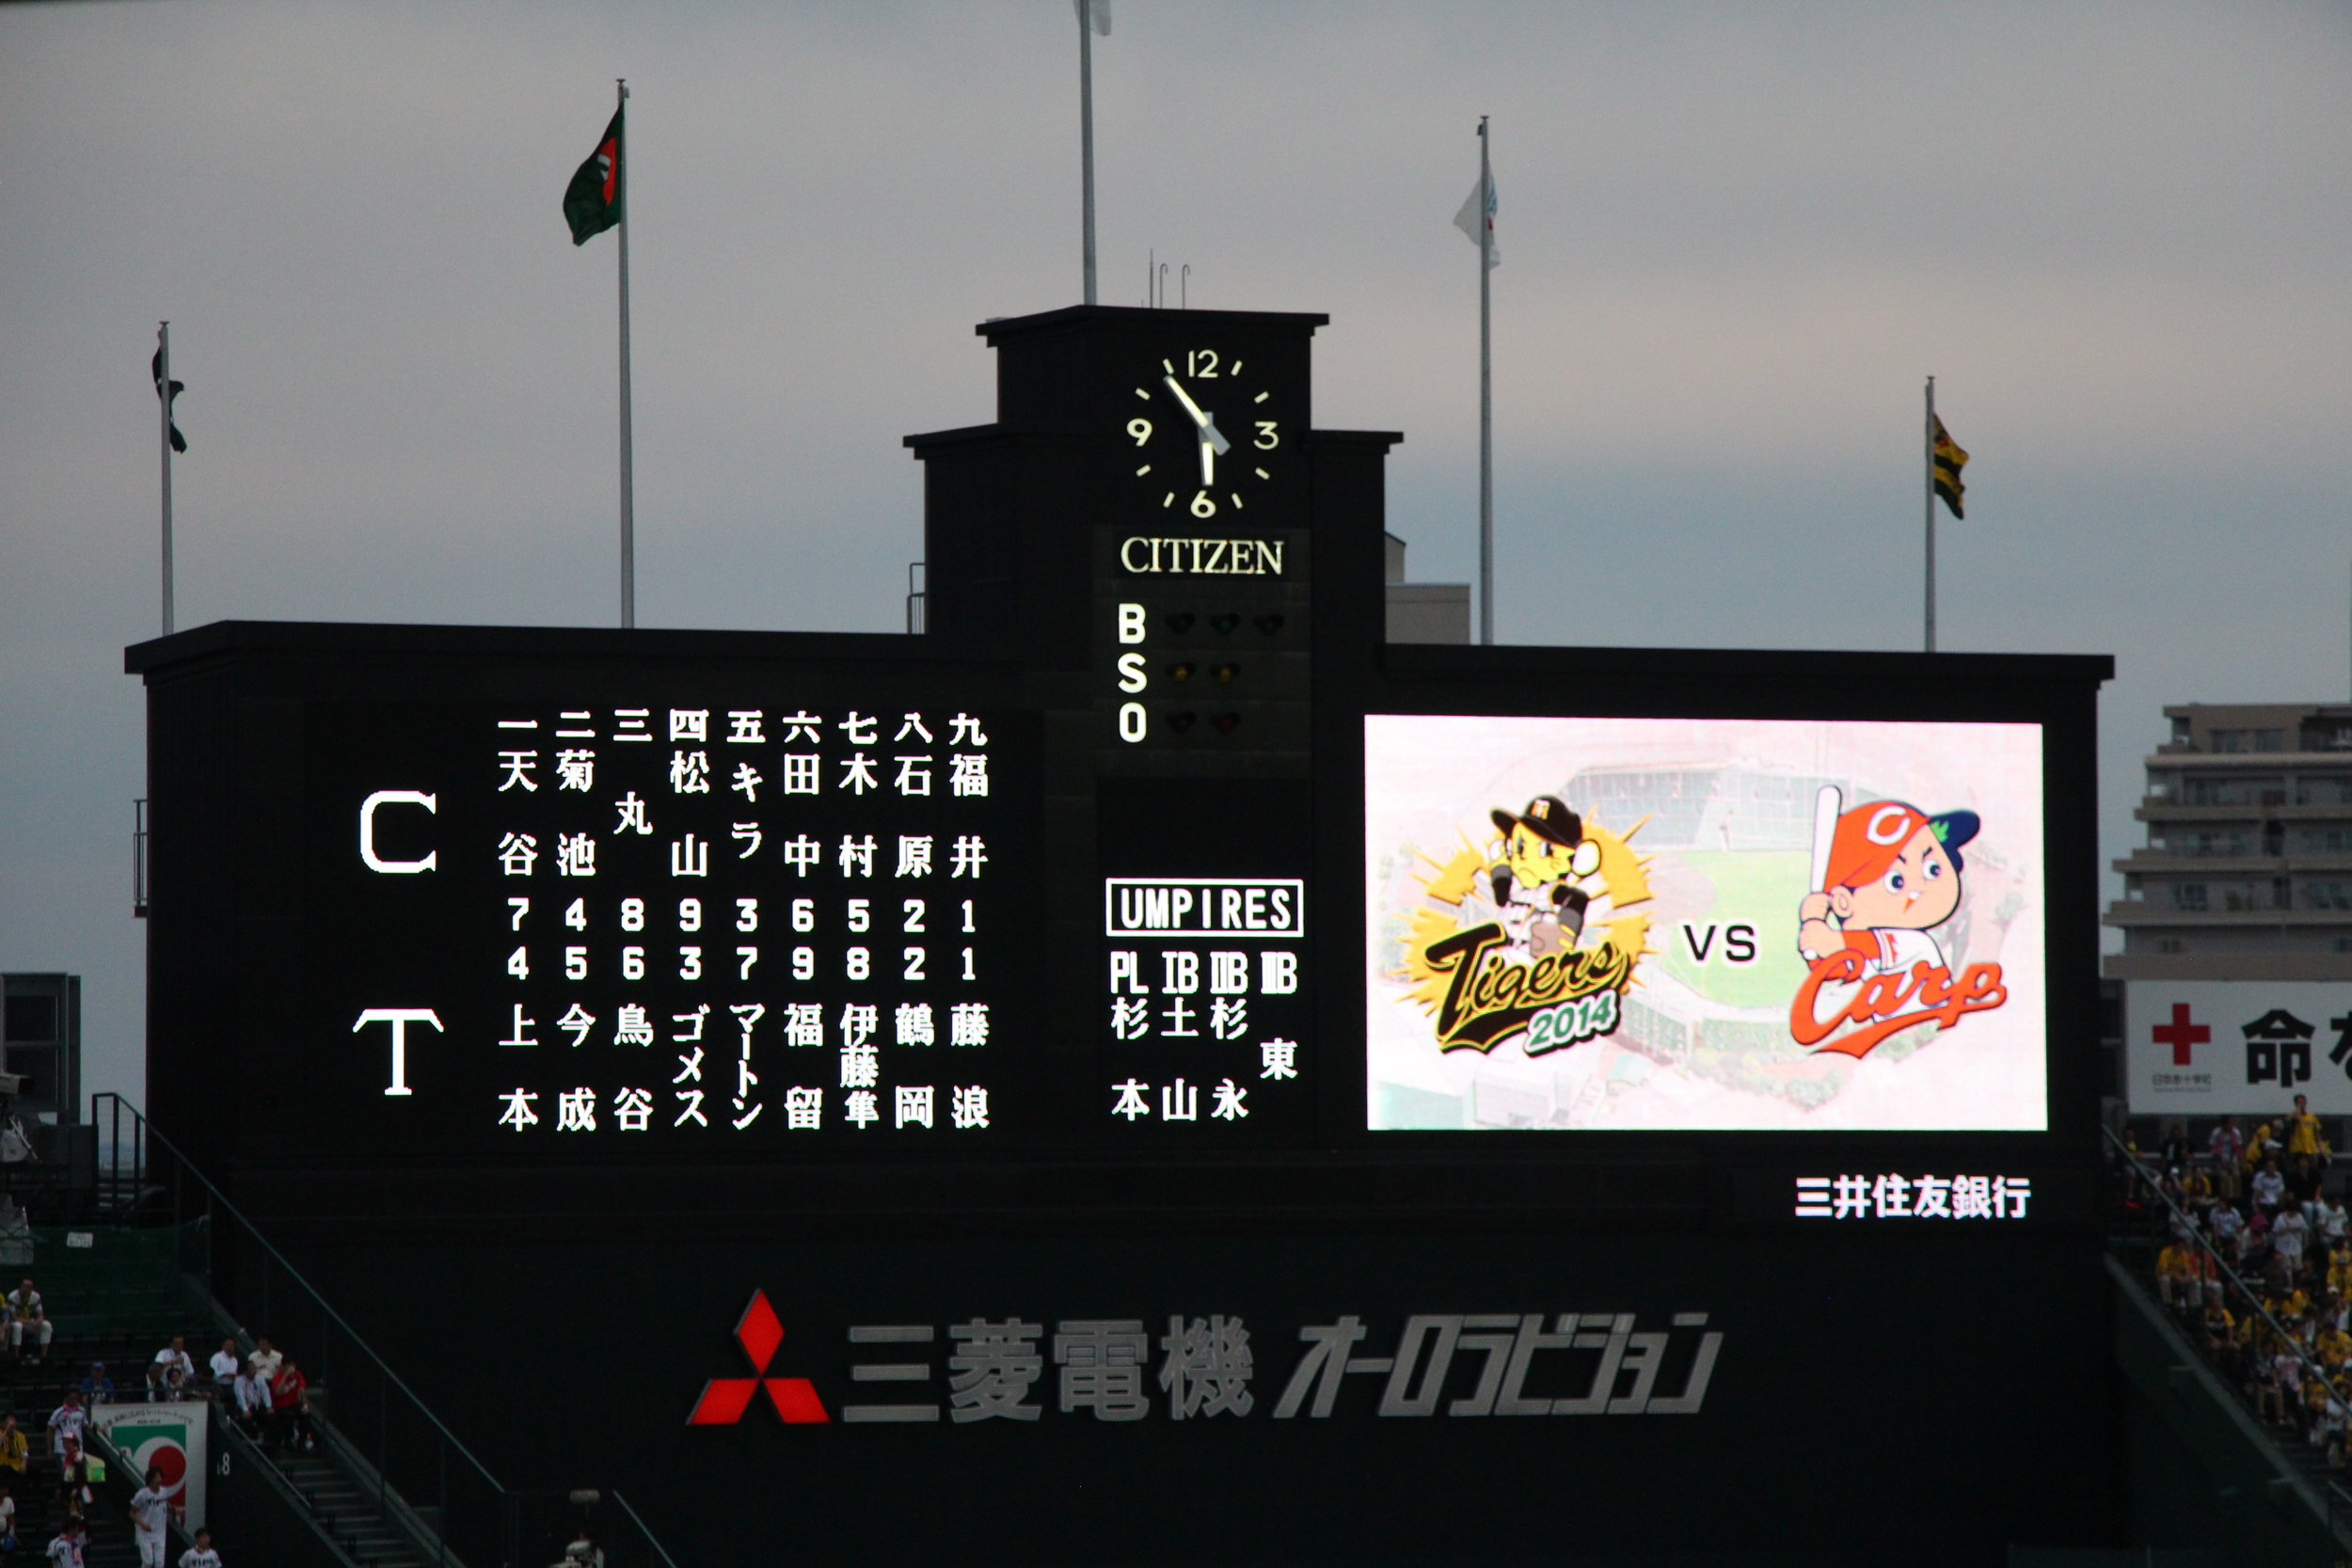 The scoreboard at the start of the game. The left board features the batting order for each team read left to right (Carp on top, Tigers on bottom) with the position indicated for each player. The use of IB, IIB, and IIIB for the umpire positions is the only use of roman numerals I've seen in Japan.